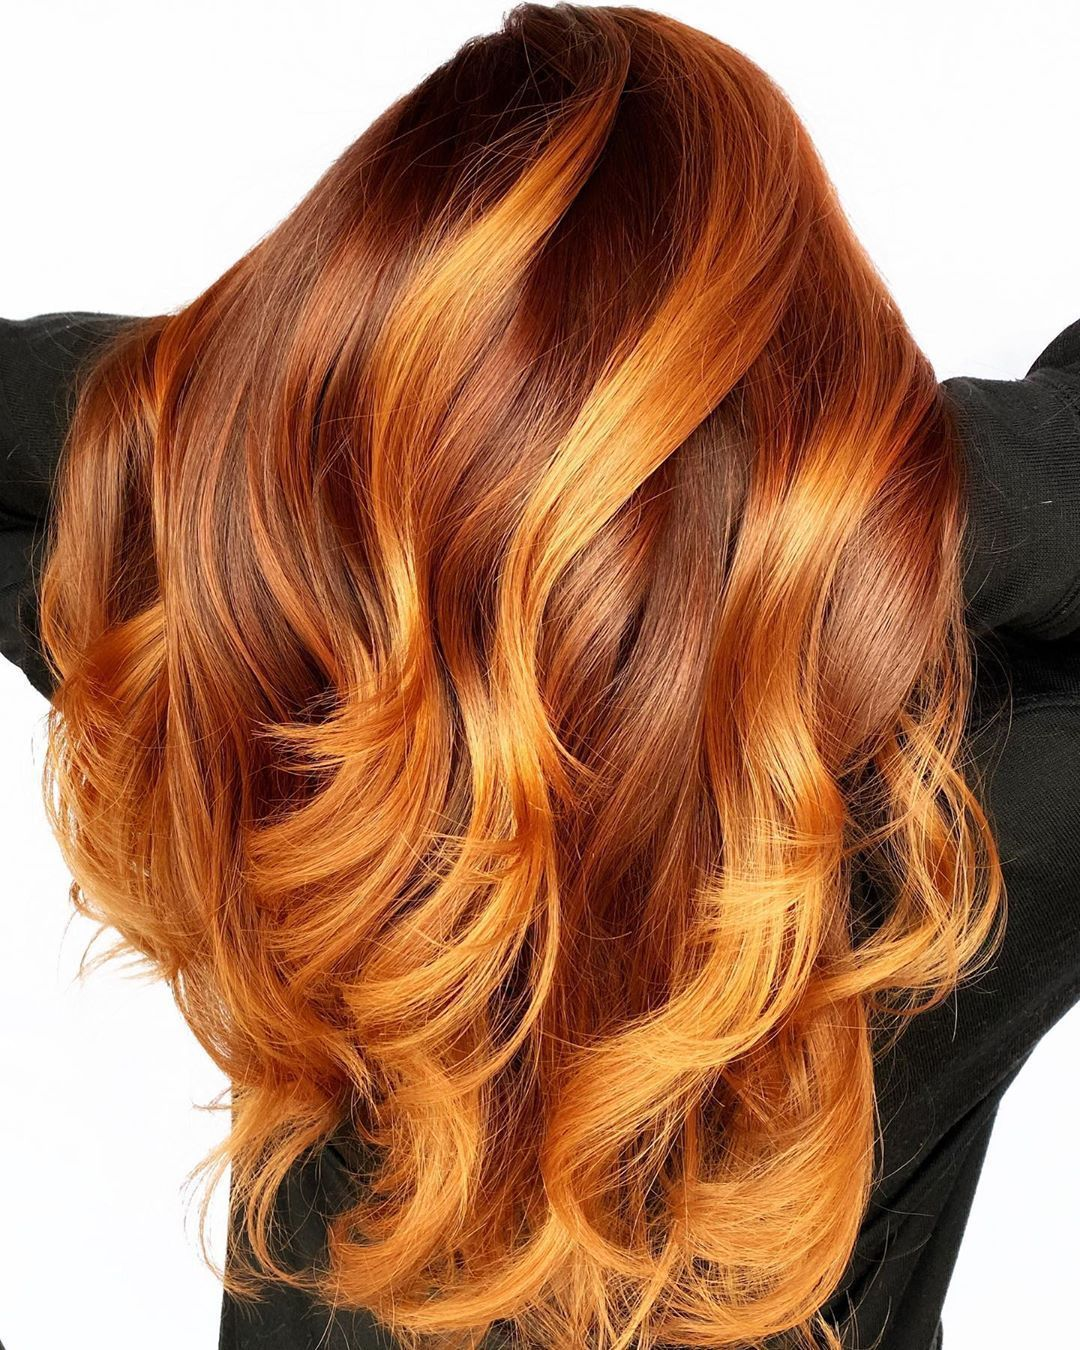 50 new red hair ideas red color trends for 2020 hair